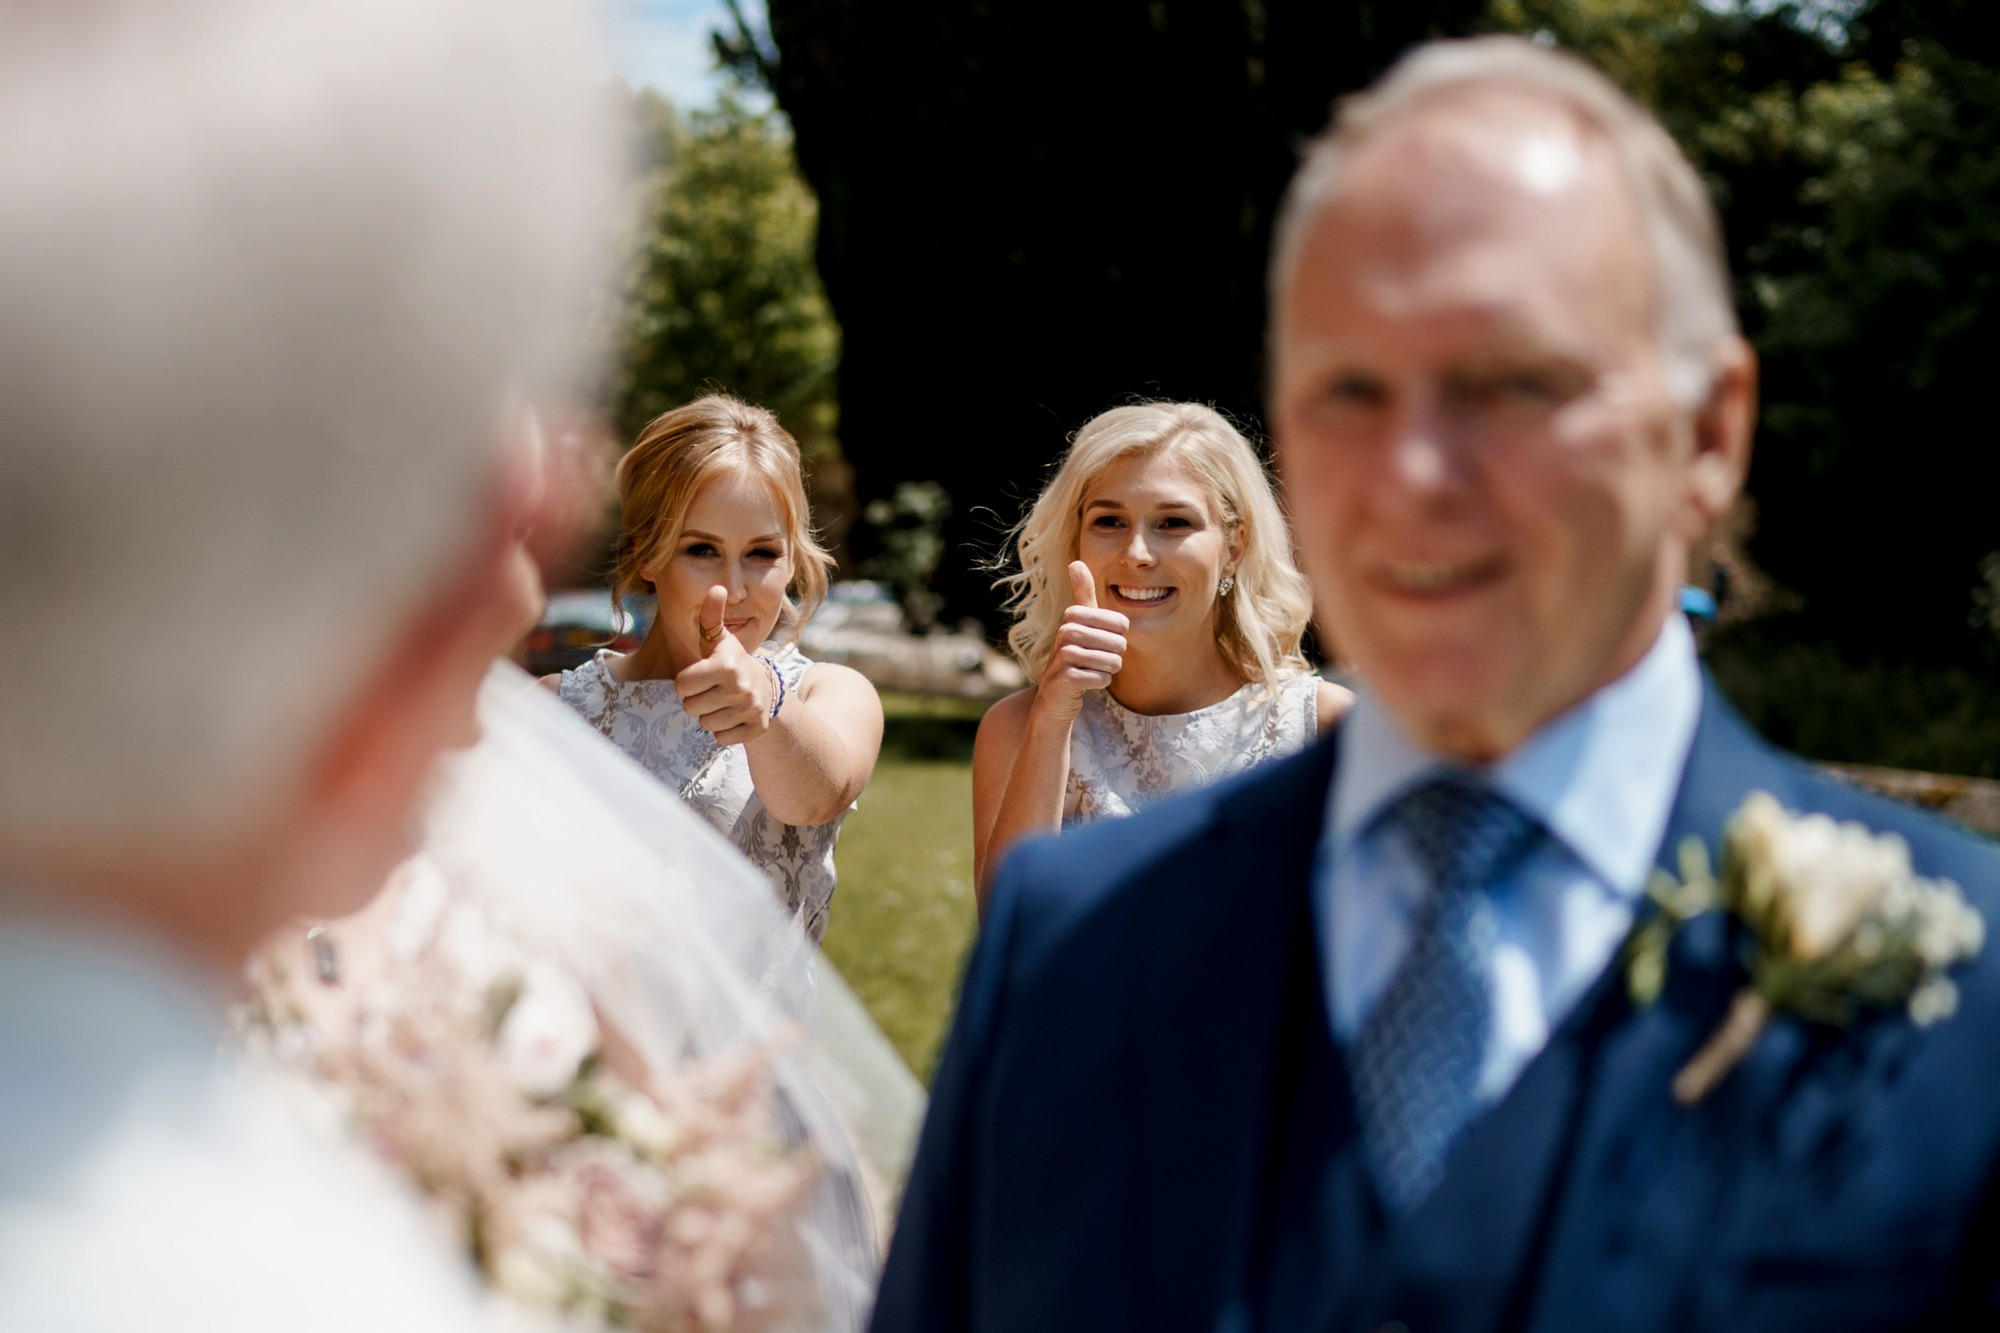 bridesmaids thumbs up to bride before wedding ceremony